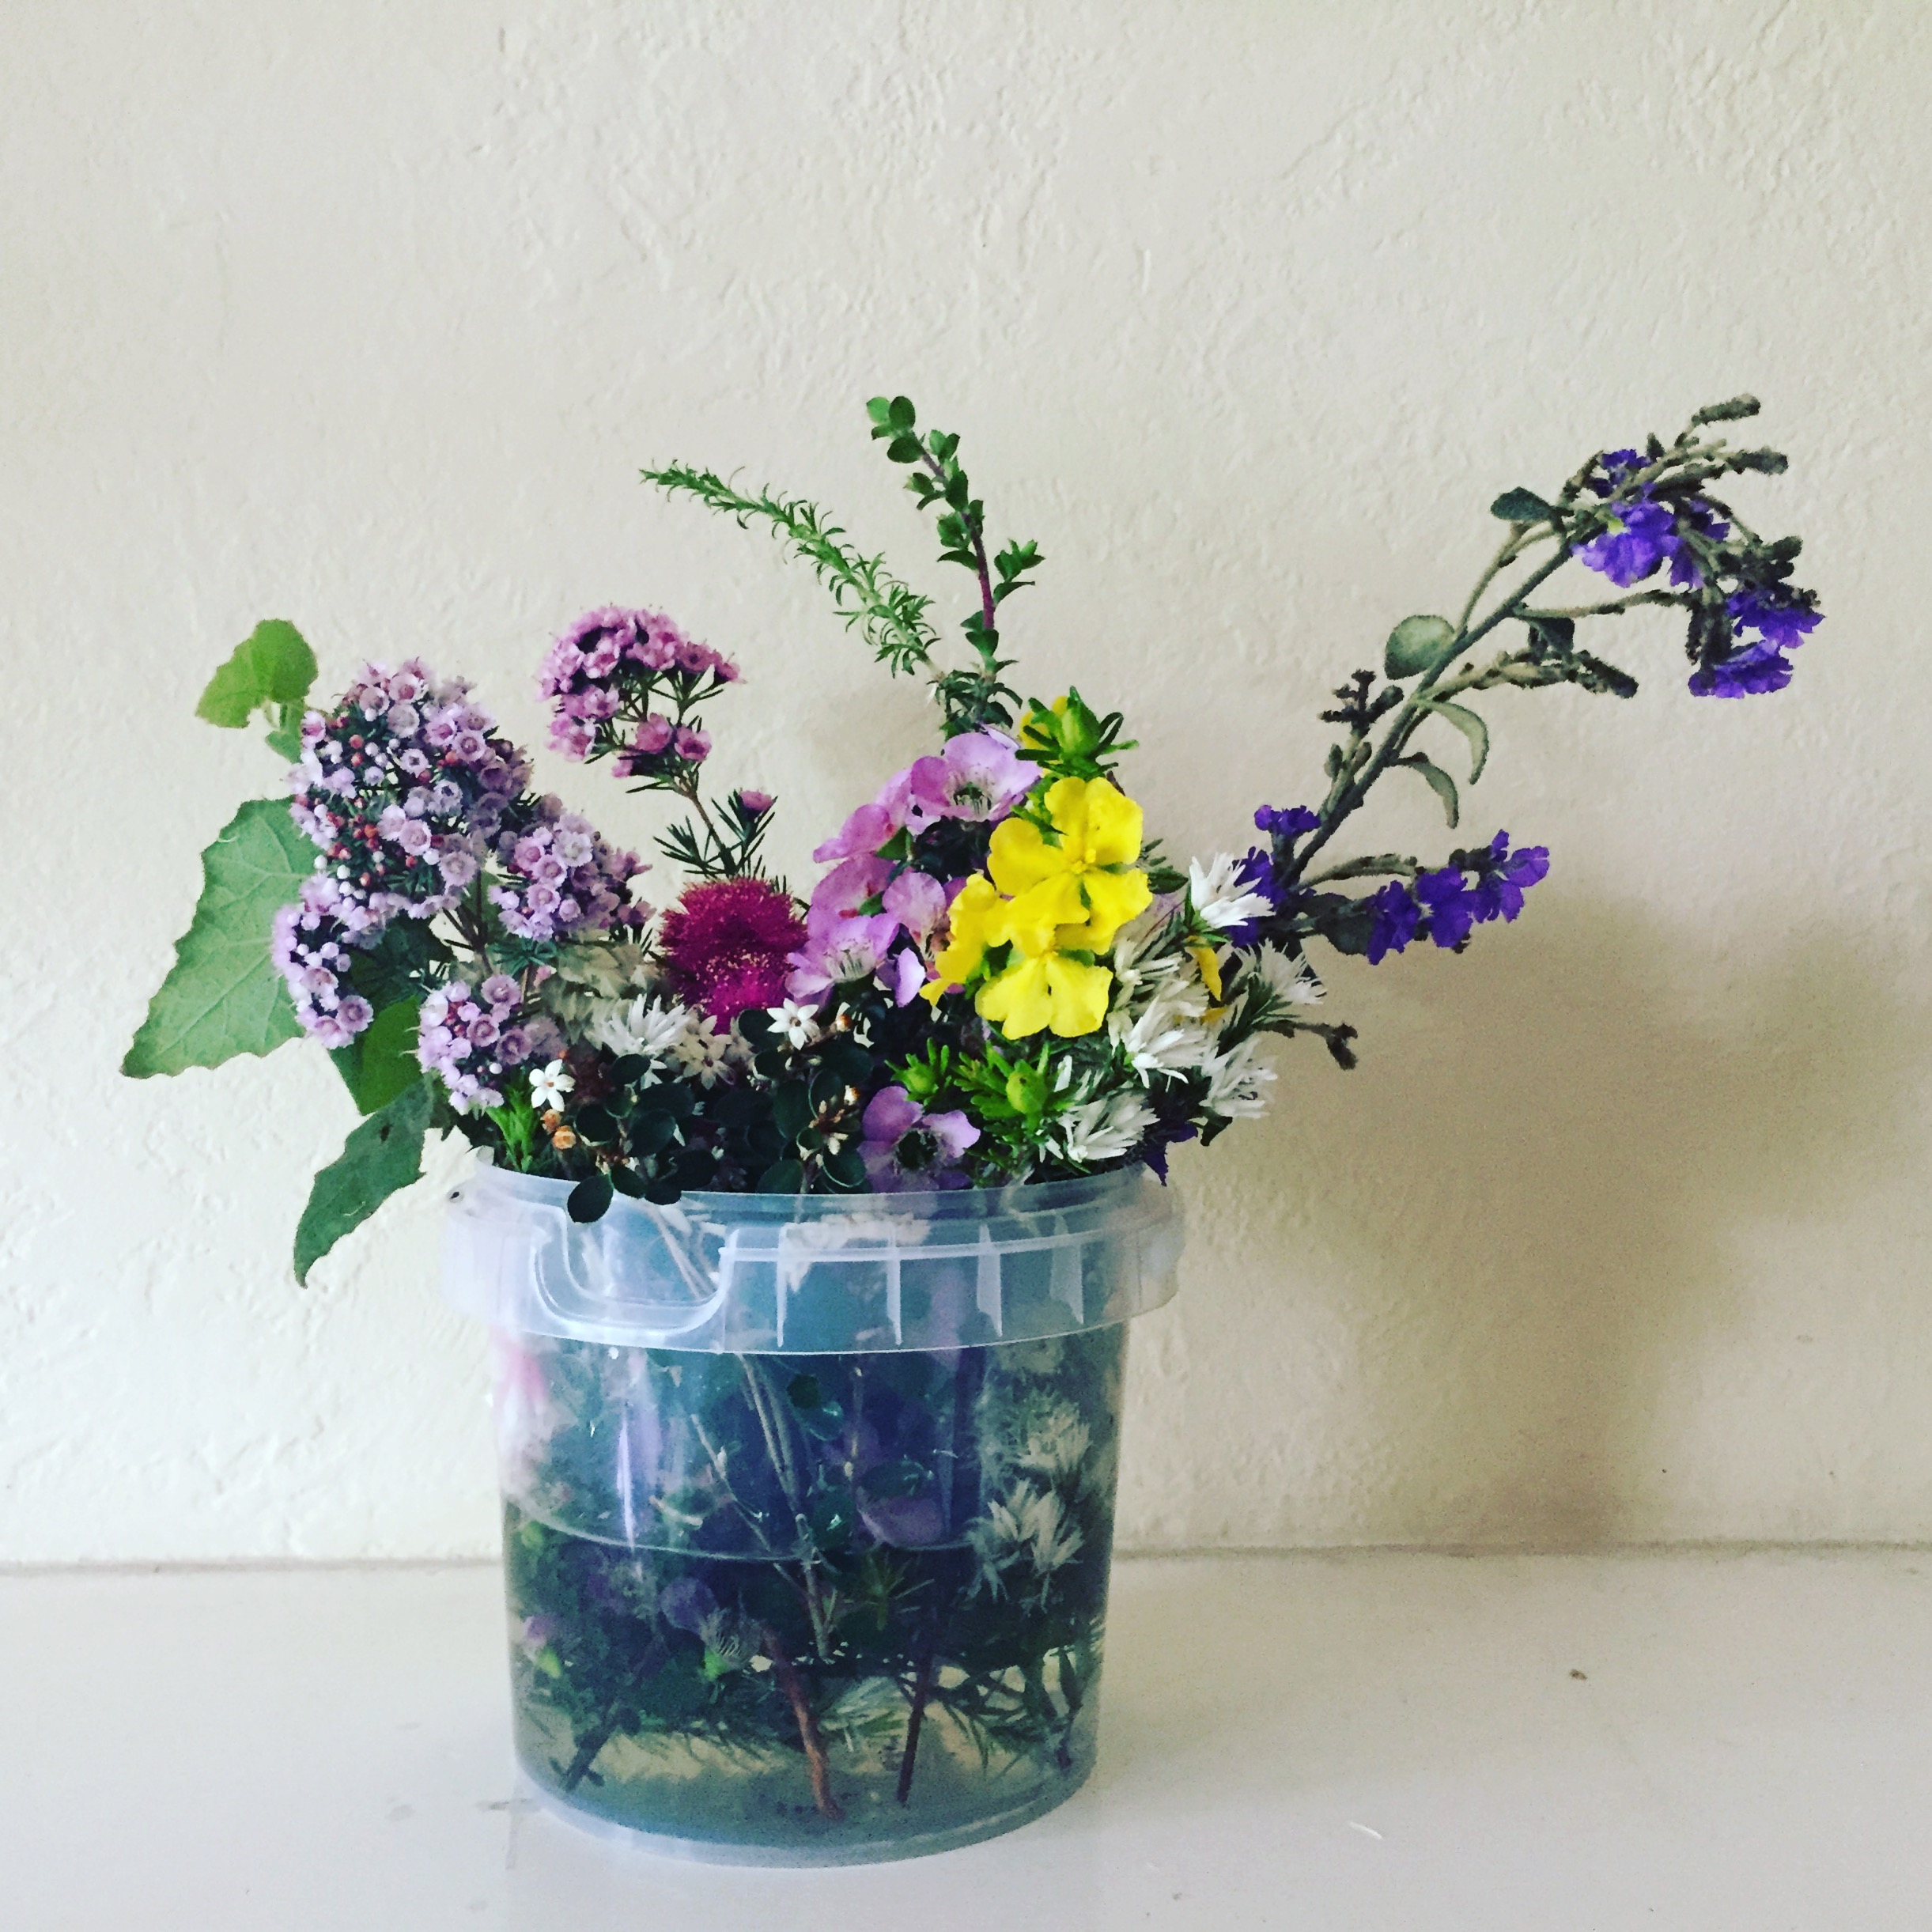 Native flowers, plastic bucket, white background | See more at www.diywoman.net